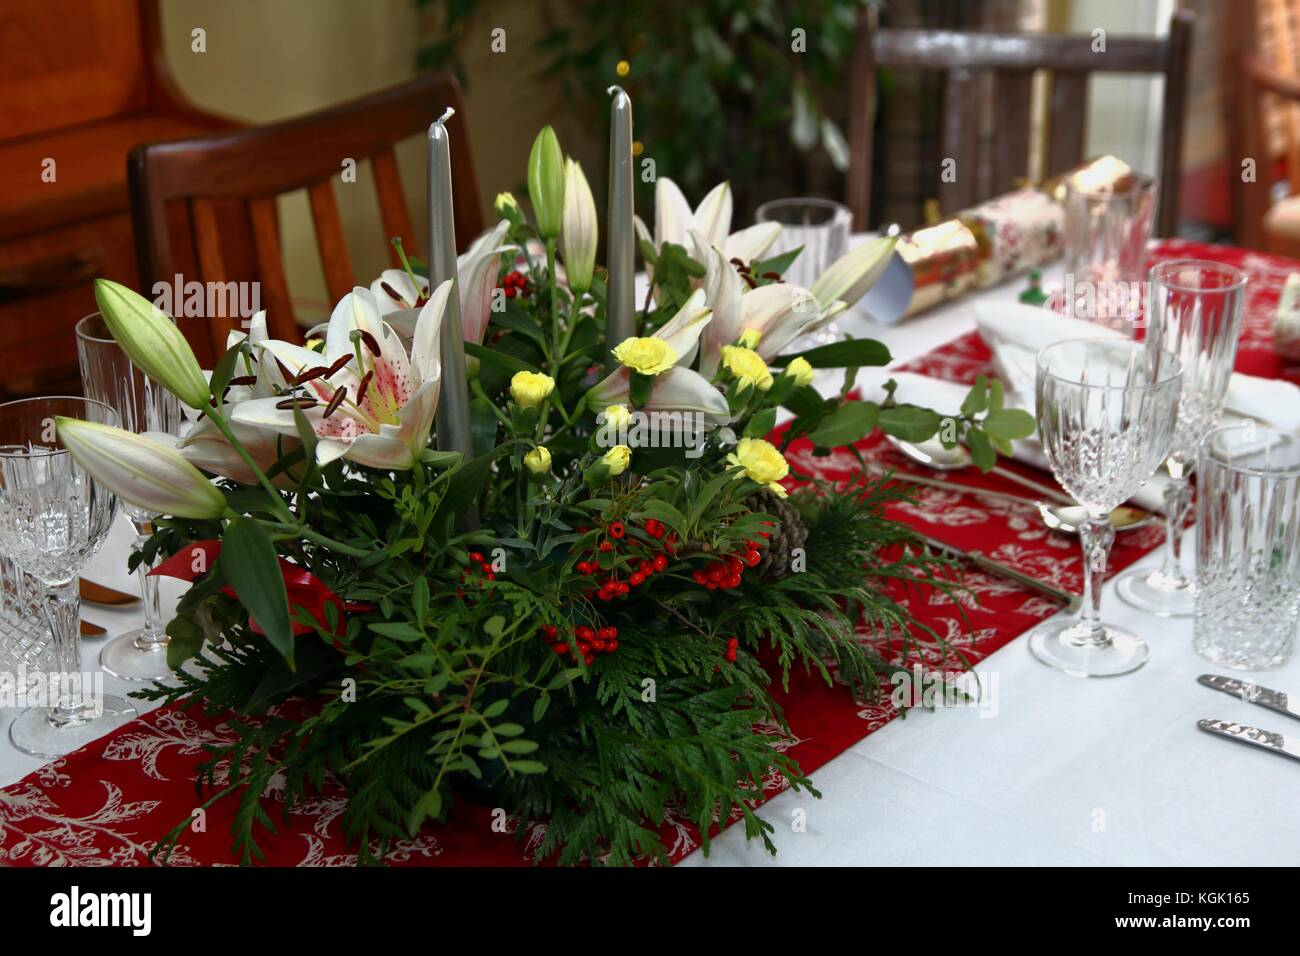 Beautiful Floral Centerpiece With Candles On A Festive Dining Table Stock Photo Alamy